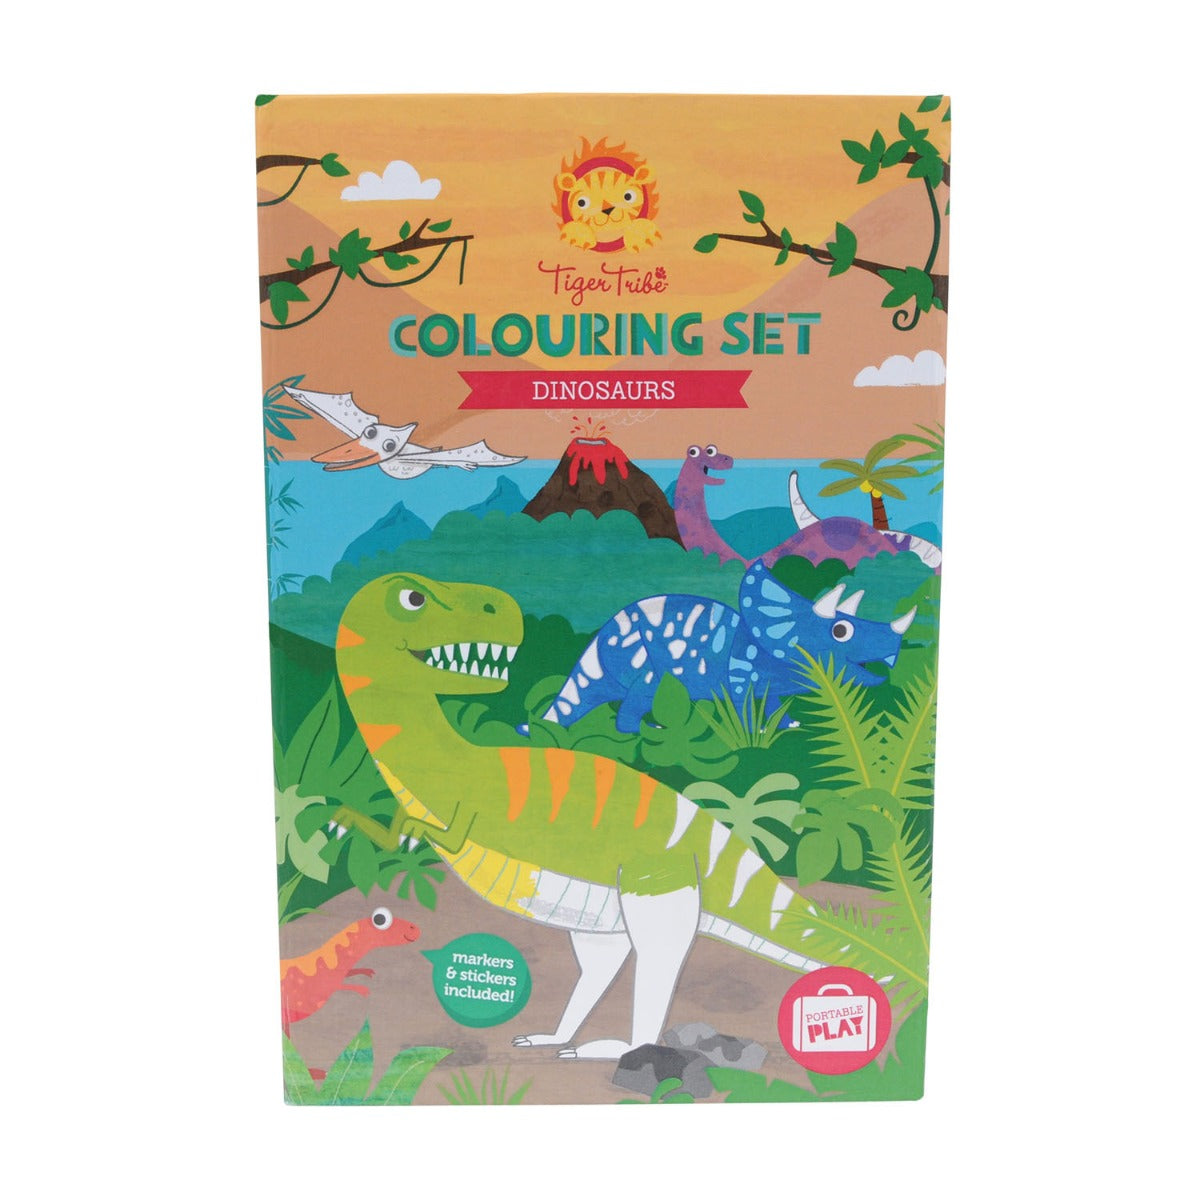 Tiger Tribe Colouring Set Dinosaurs Little Sprout Toy Shop Canberra